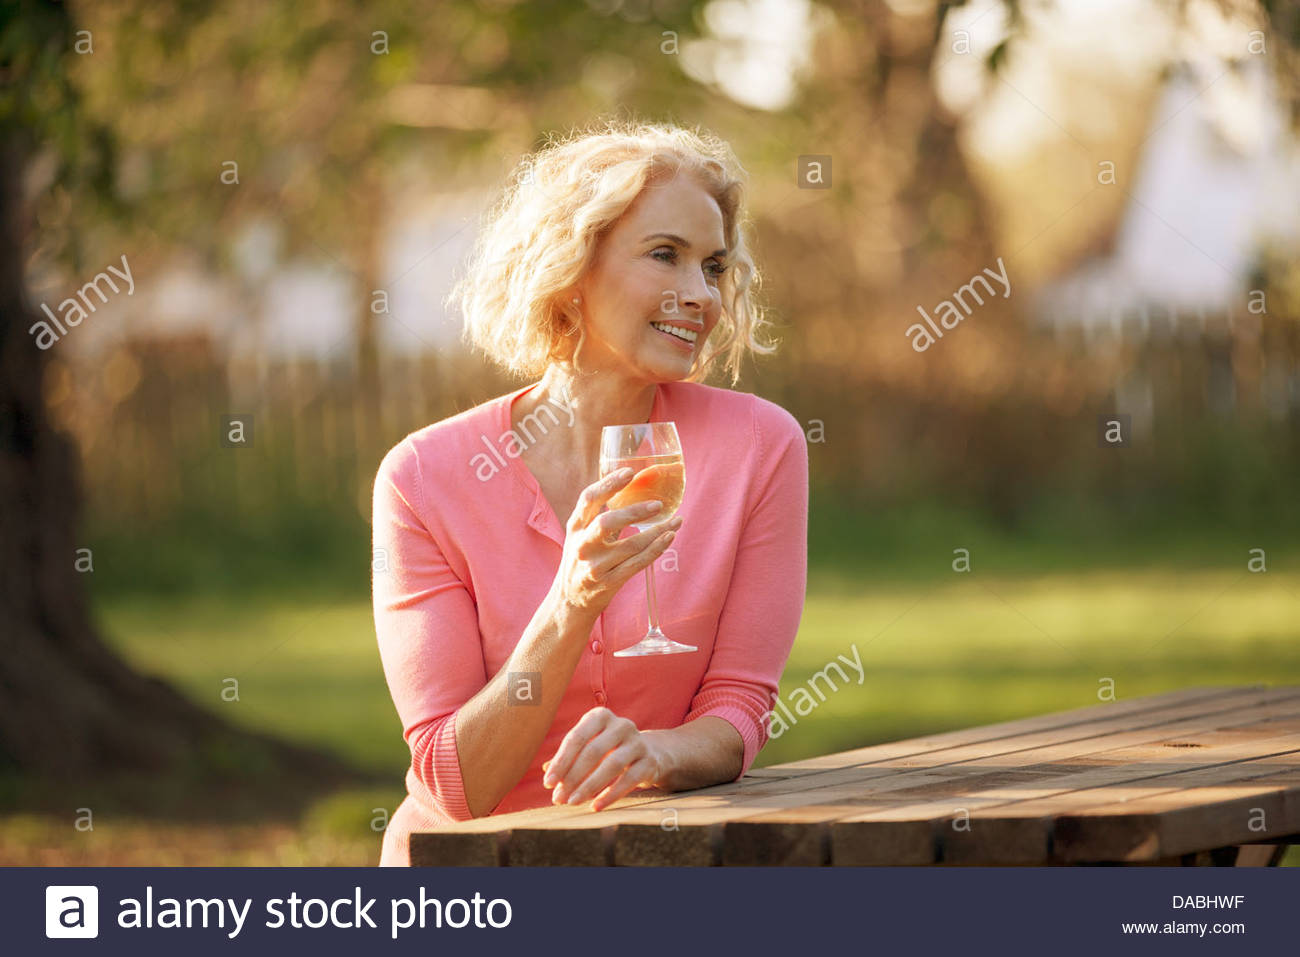 A mature woman sitting at a garden bench drinking a glass of wine - Stock Image